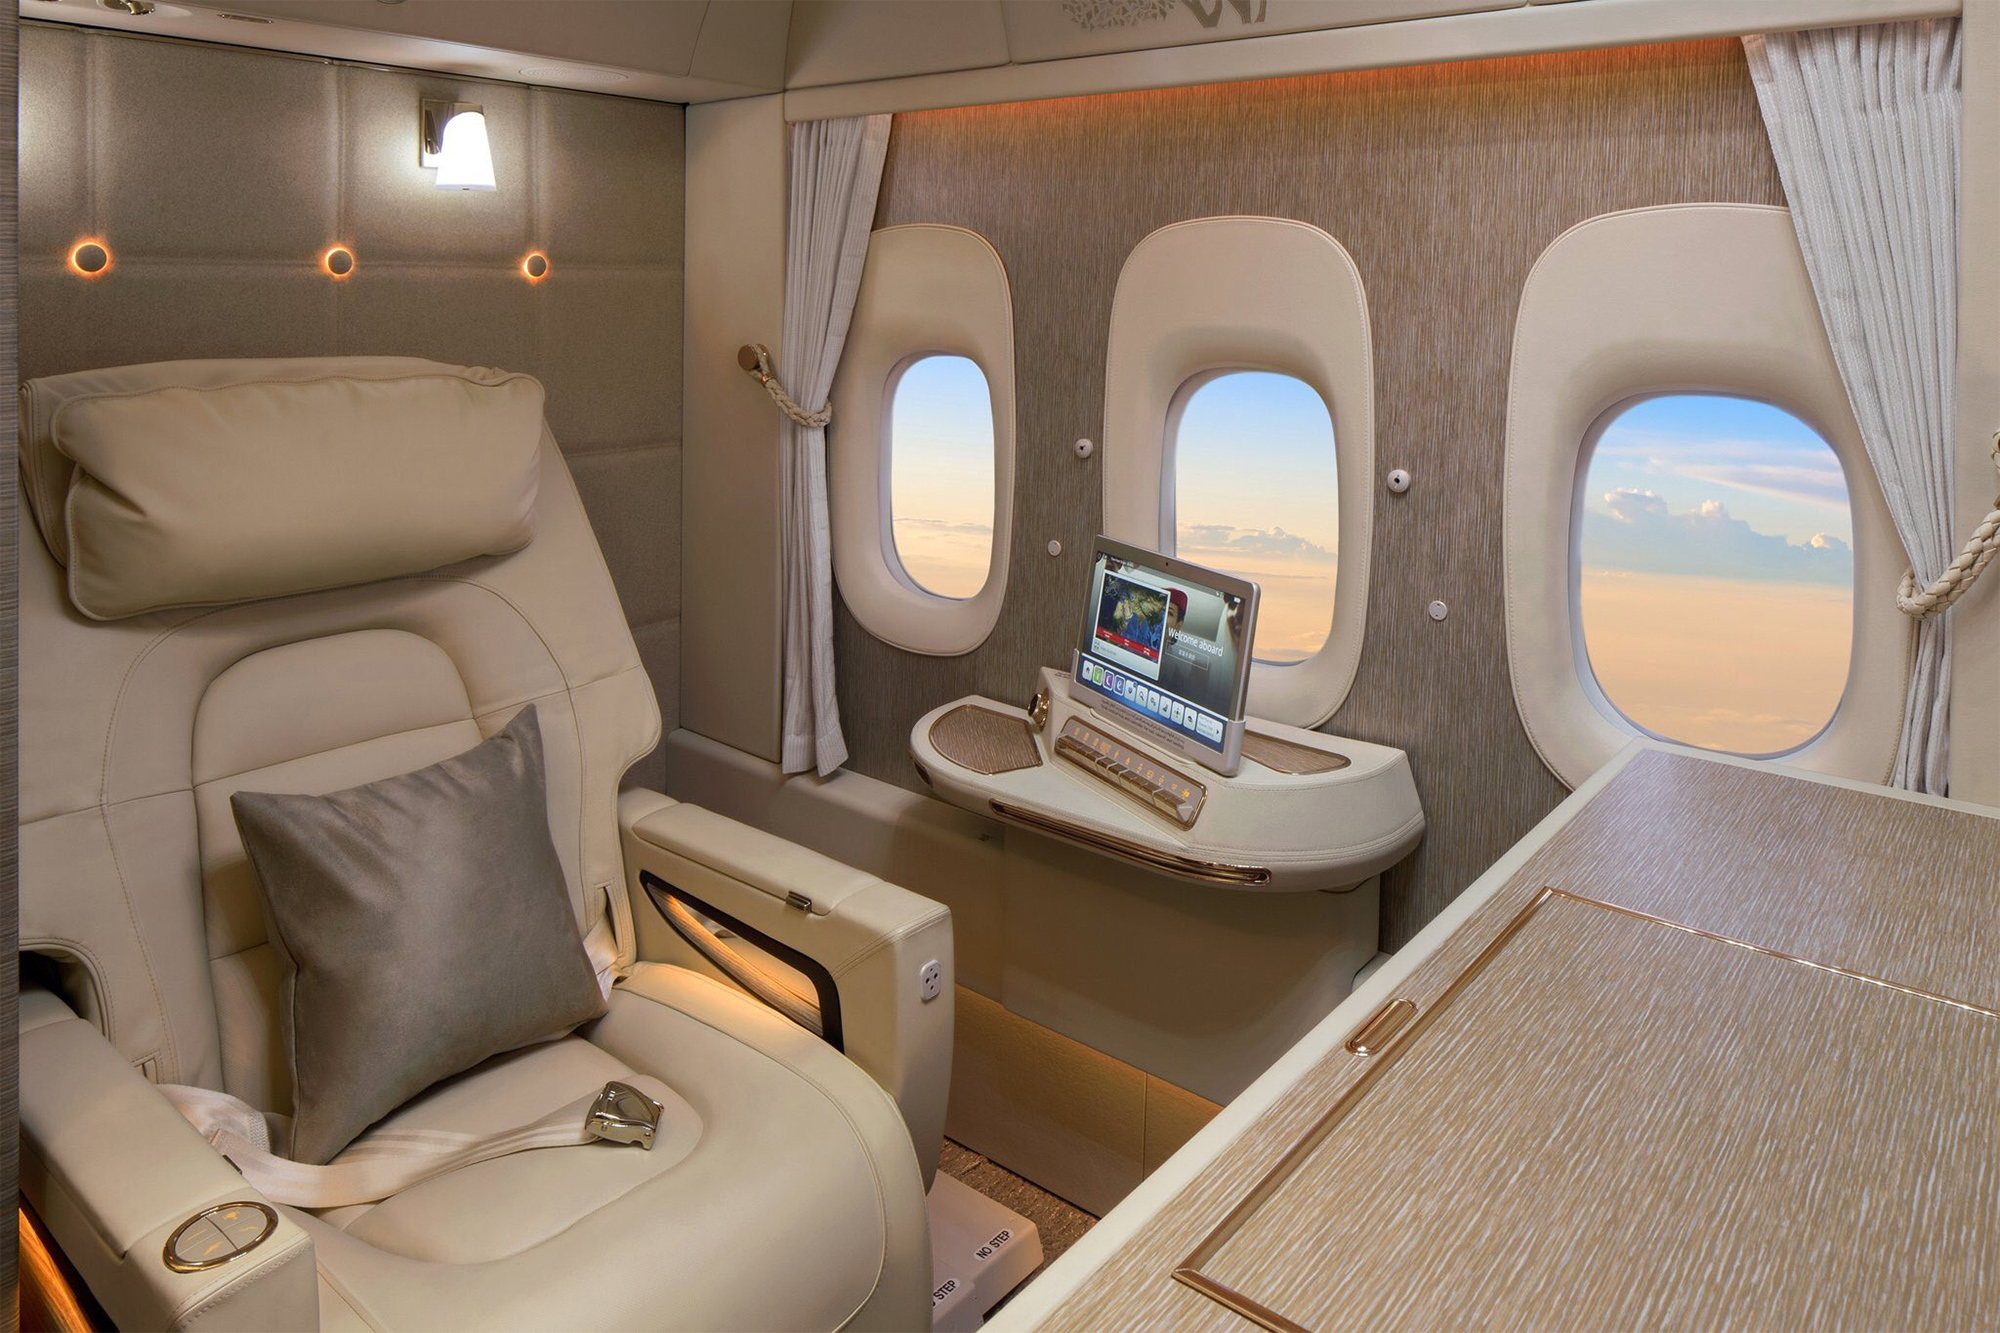 Emirates restarting Singapore flights on 18 June with new First Class Suites